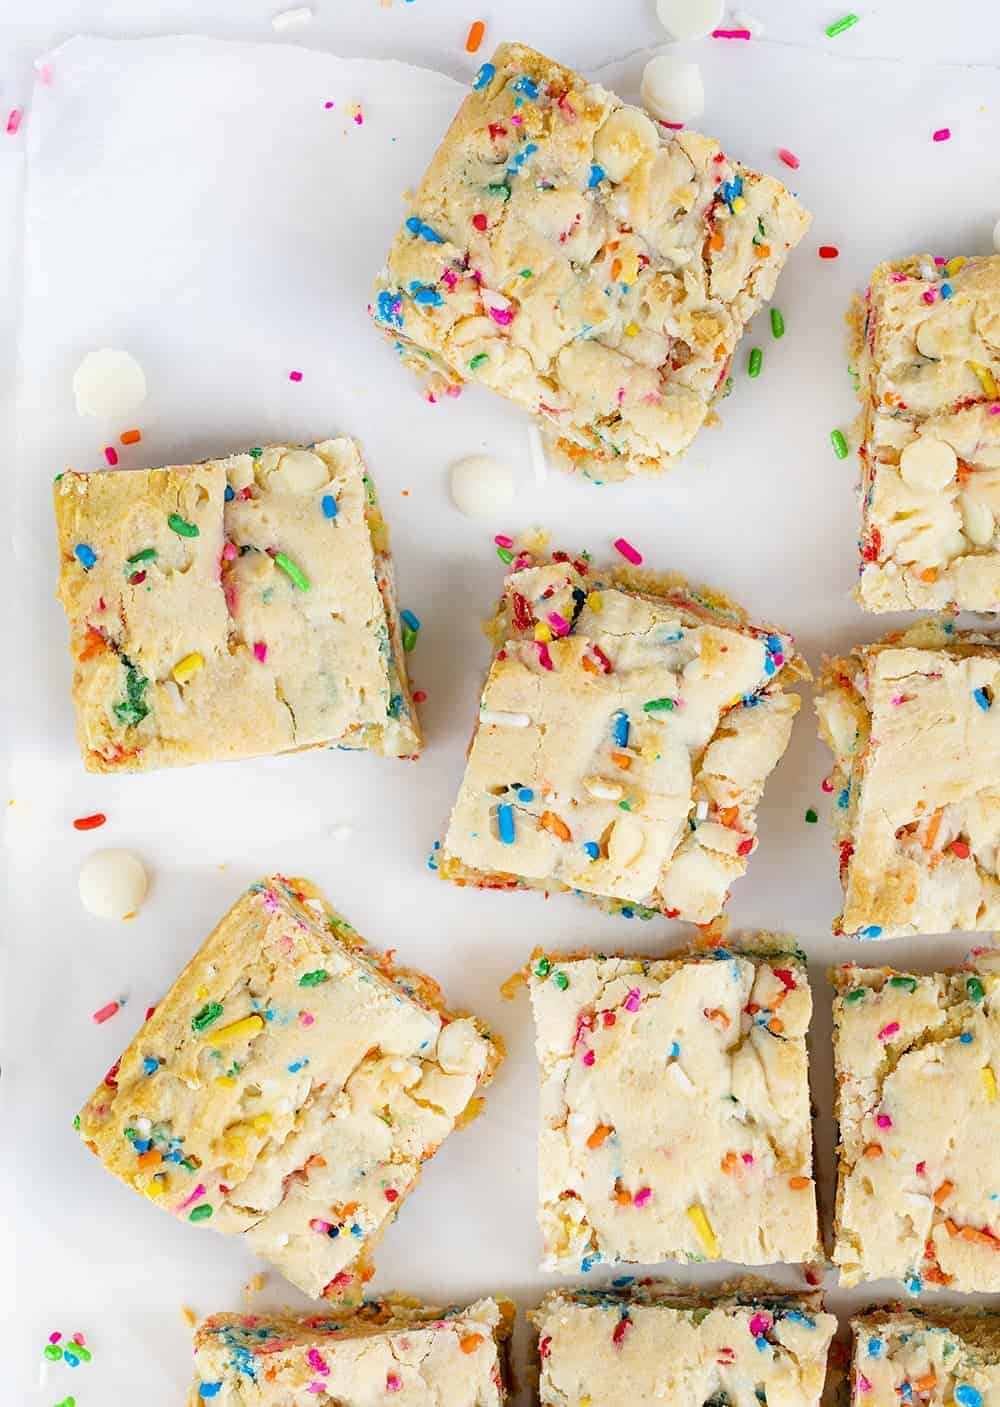 OVerhead Image of Birthday Blondies Cut Into Pieces and Pulled Apart